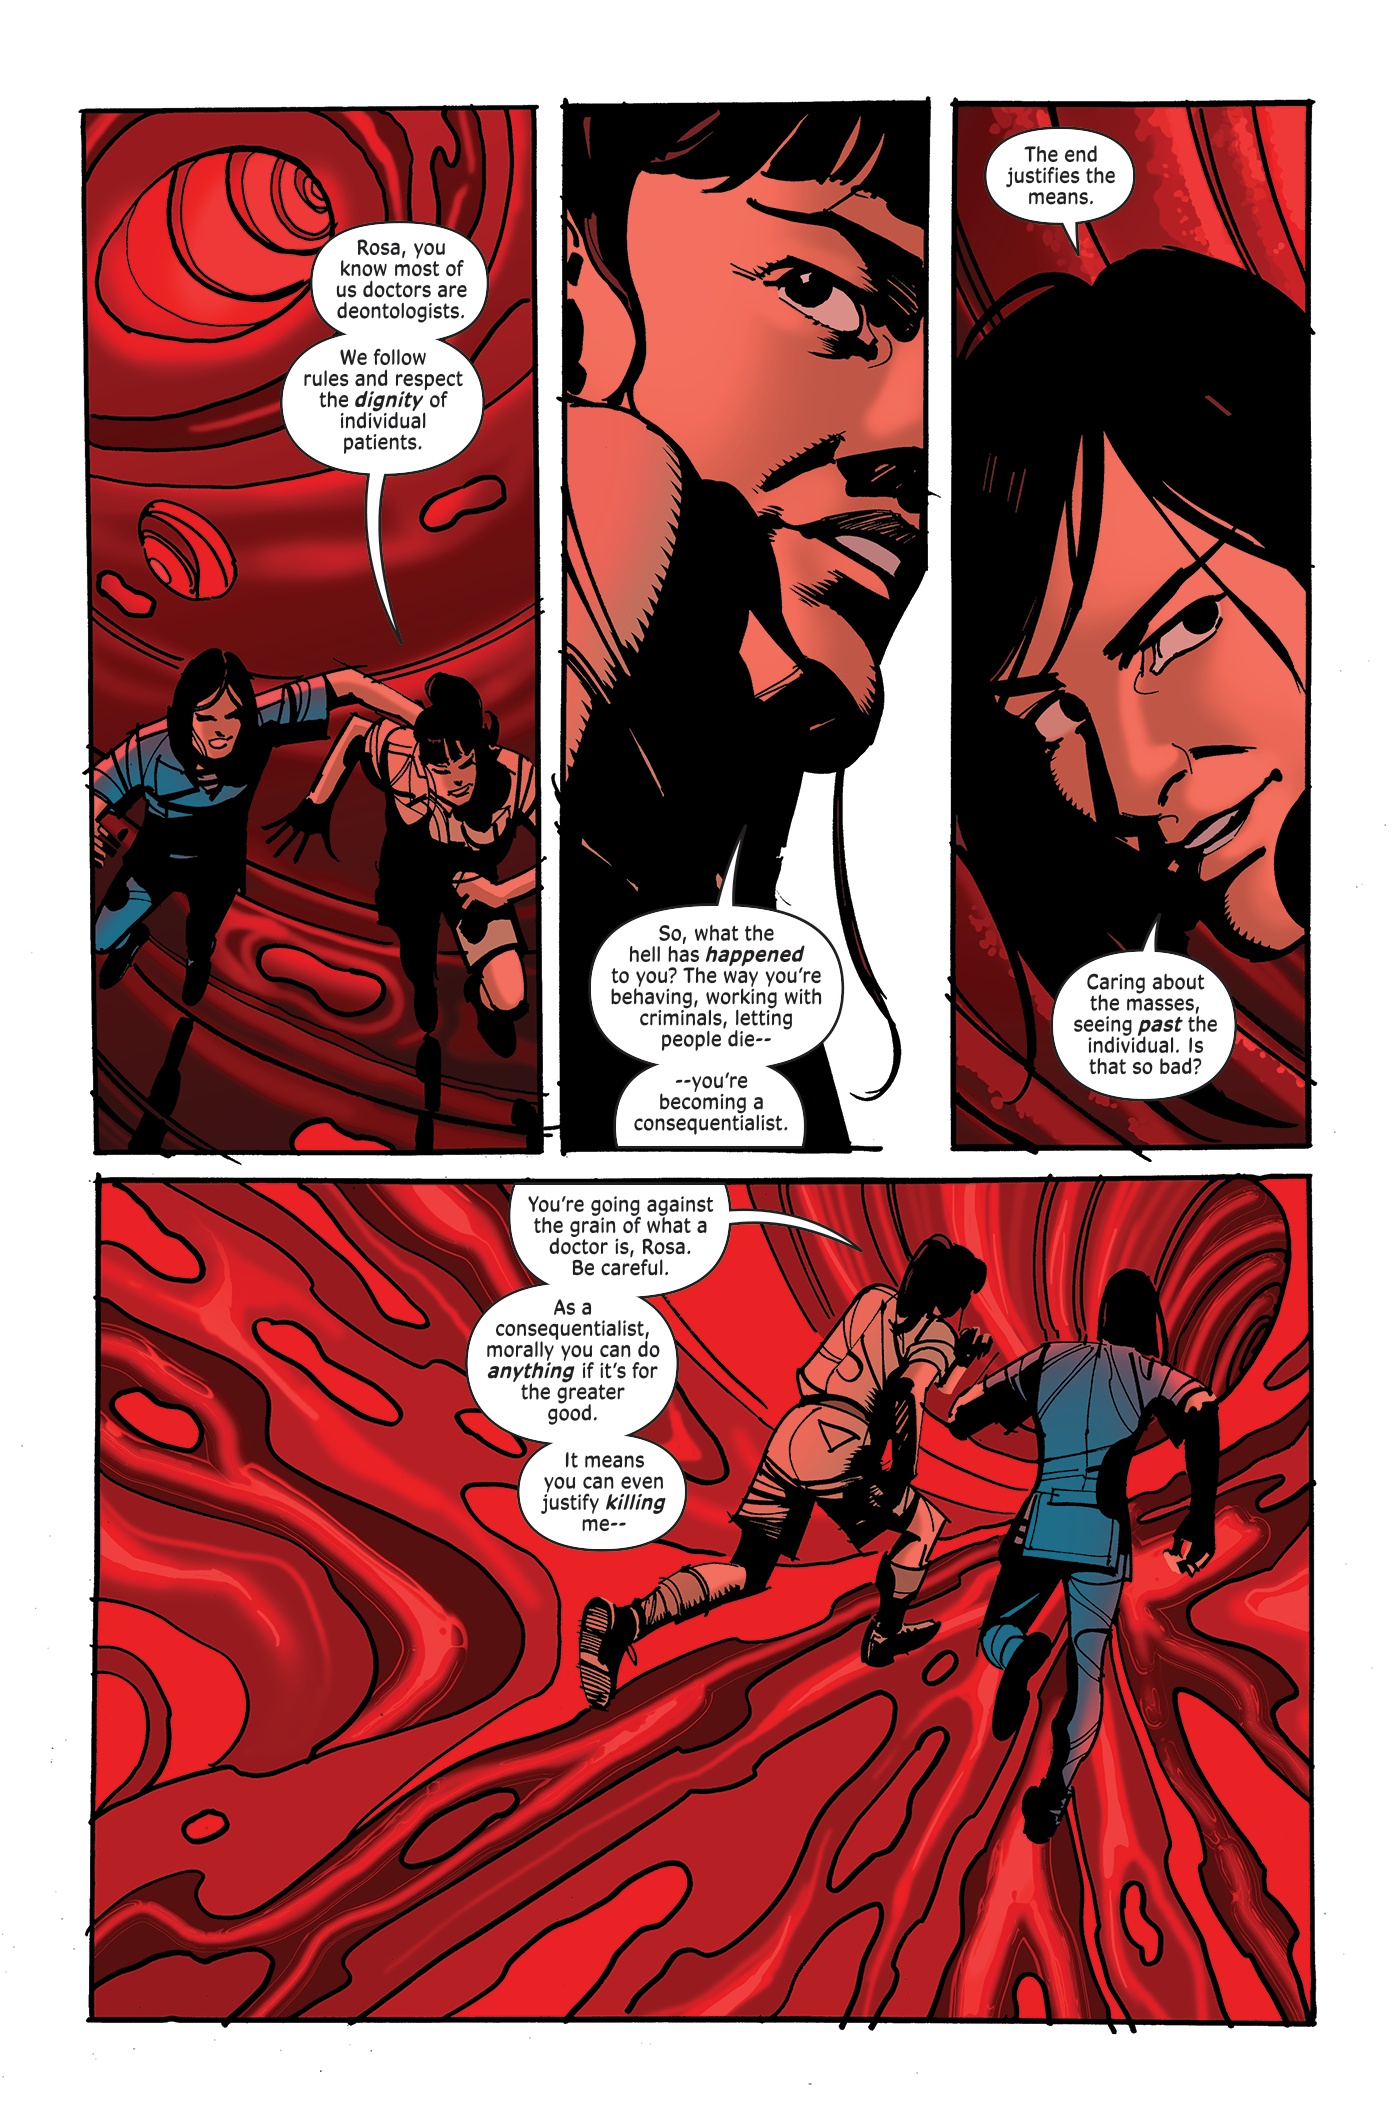 Surgeon X, Chapter 6, page 5